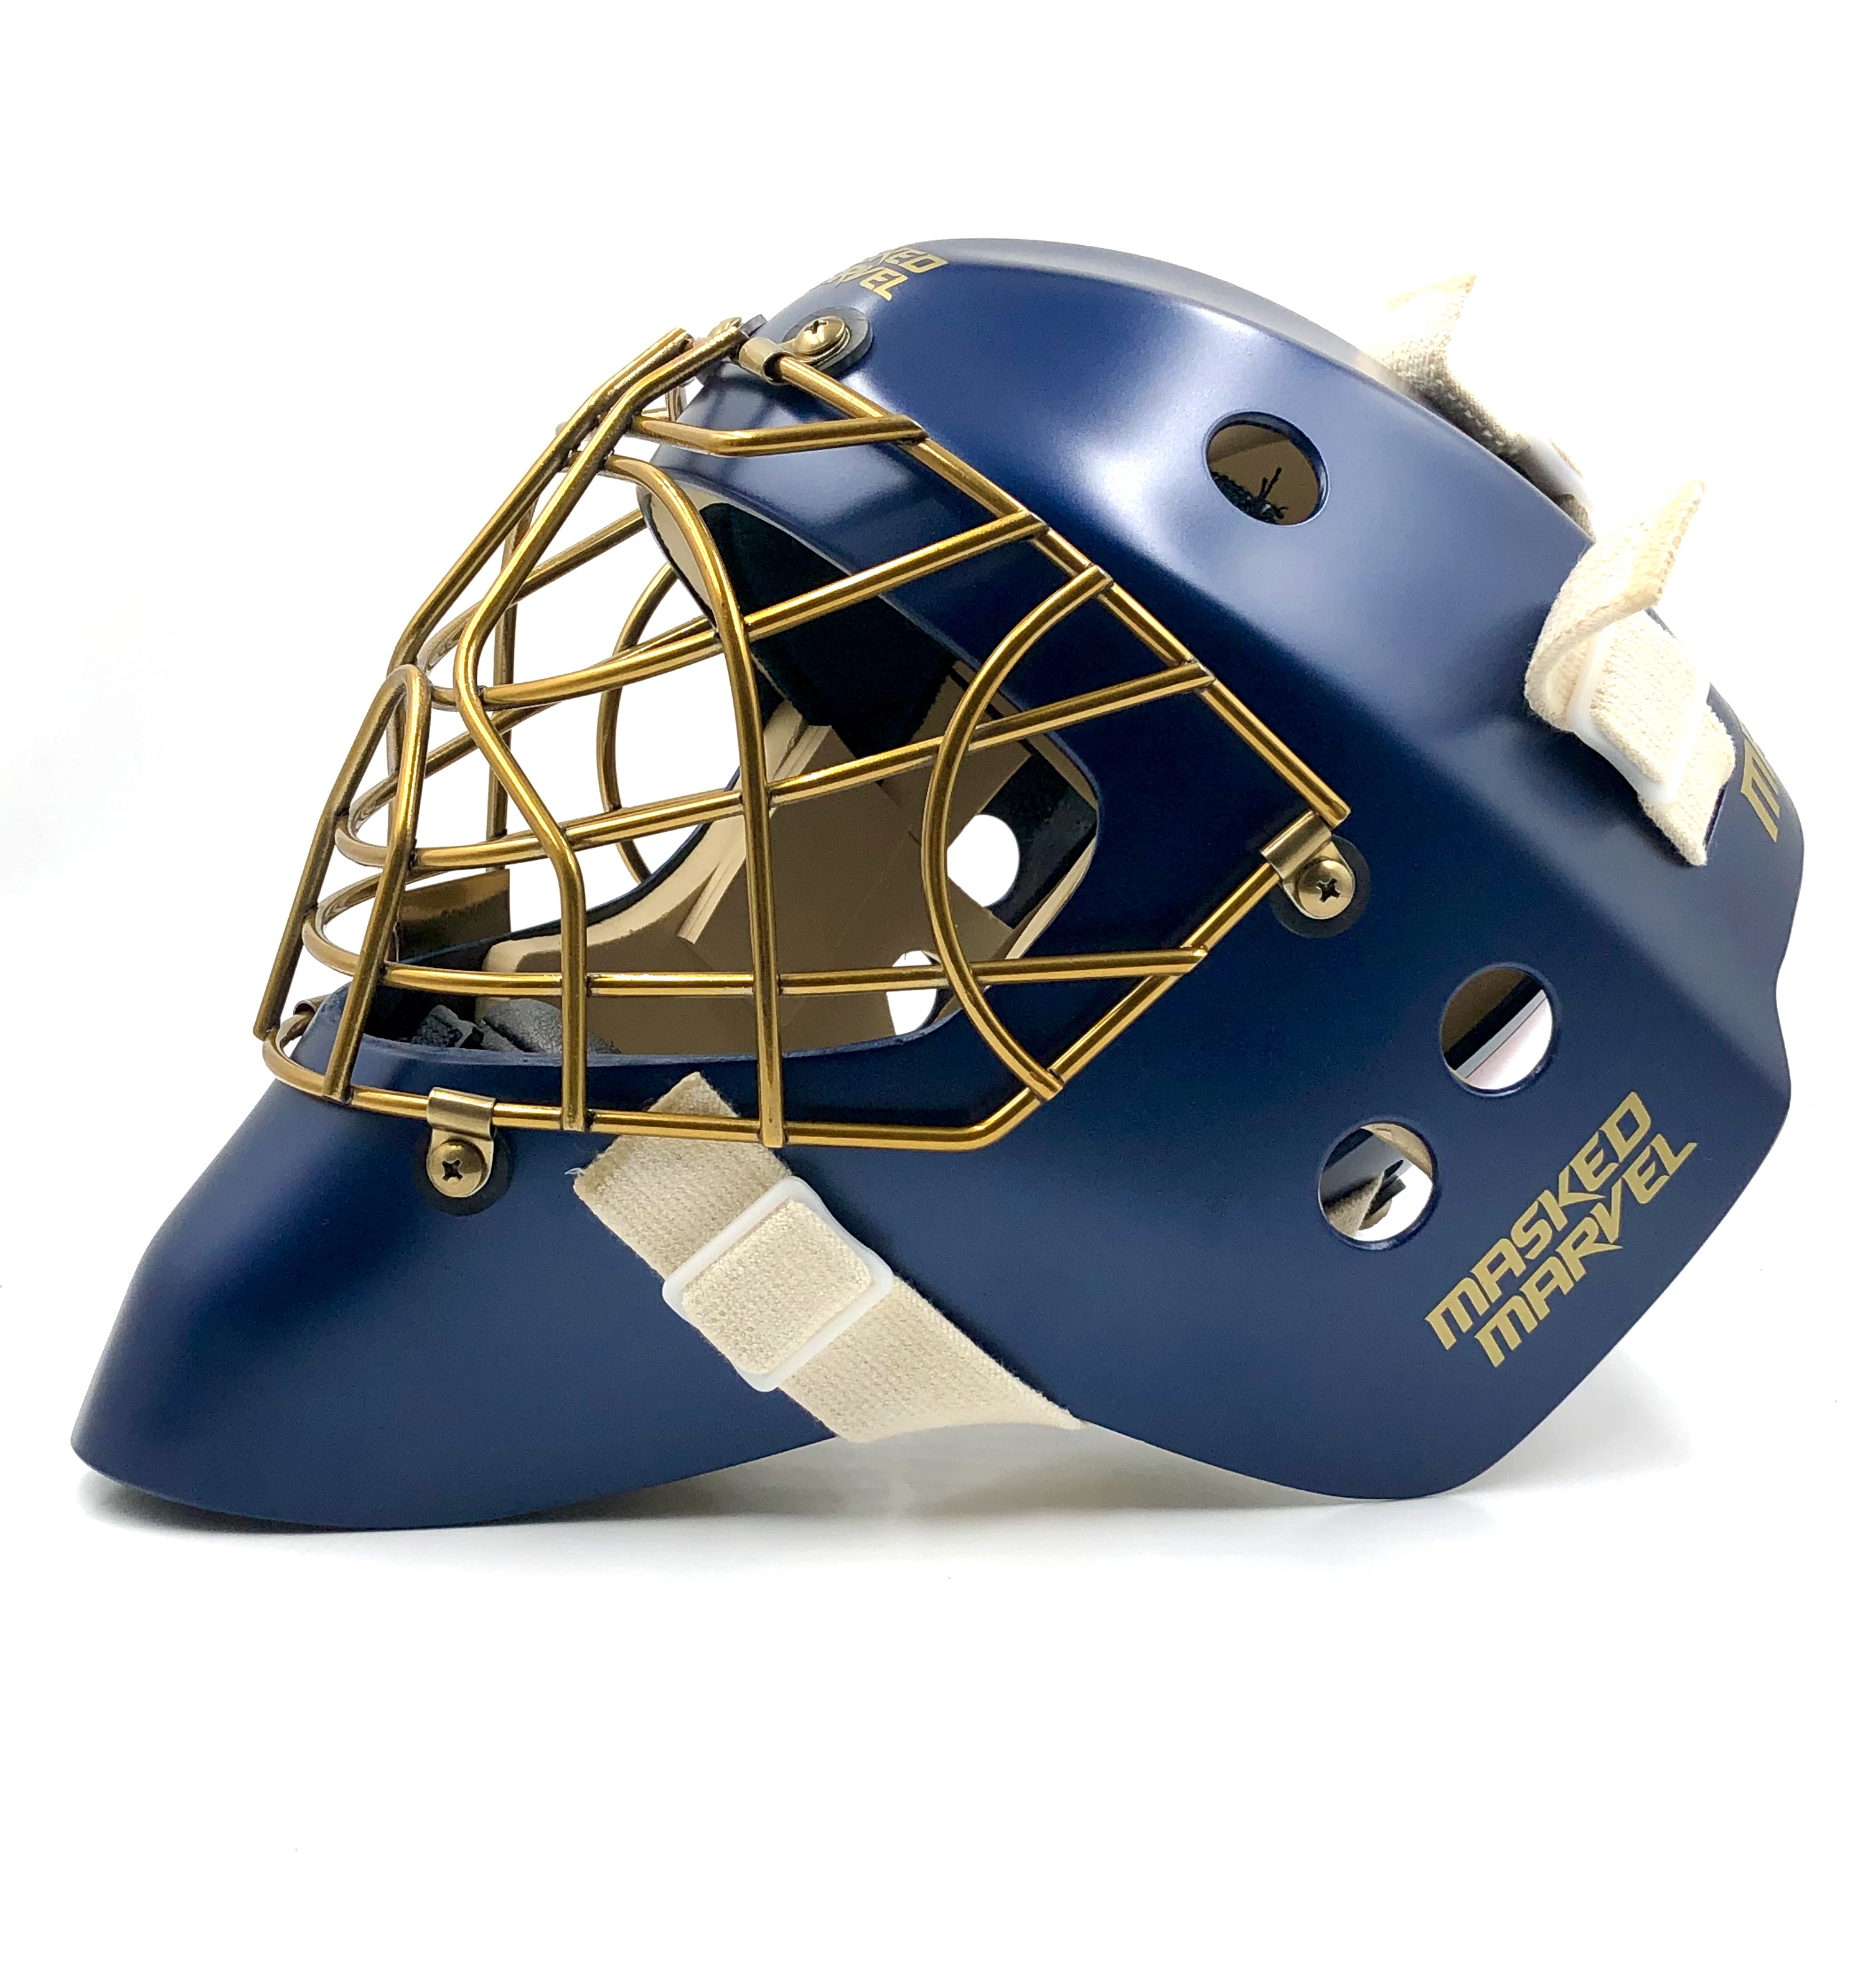 Bandits Jr. Model - Matte Navy